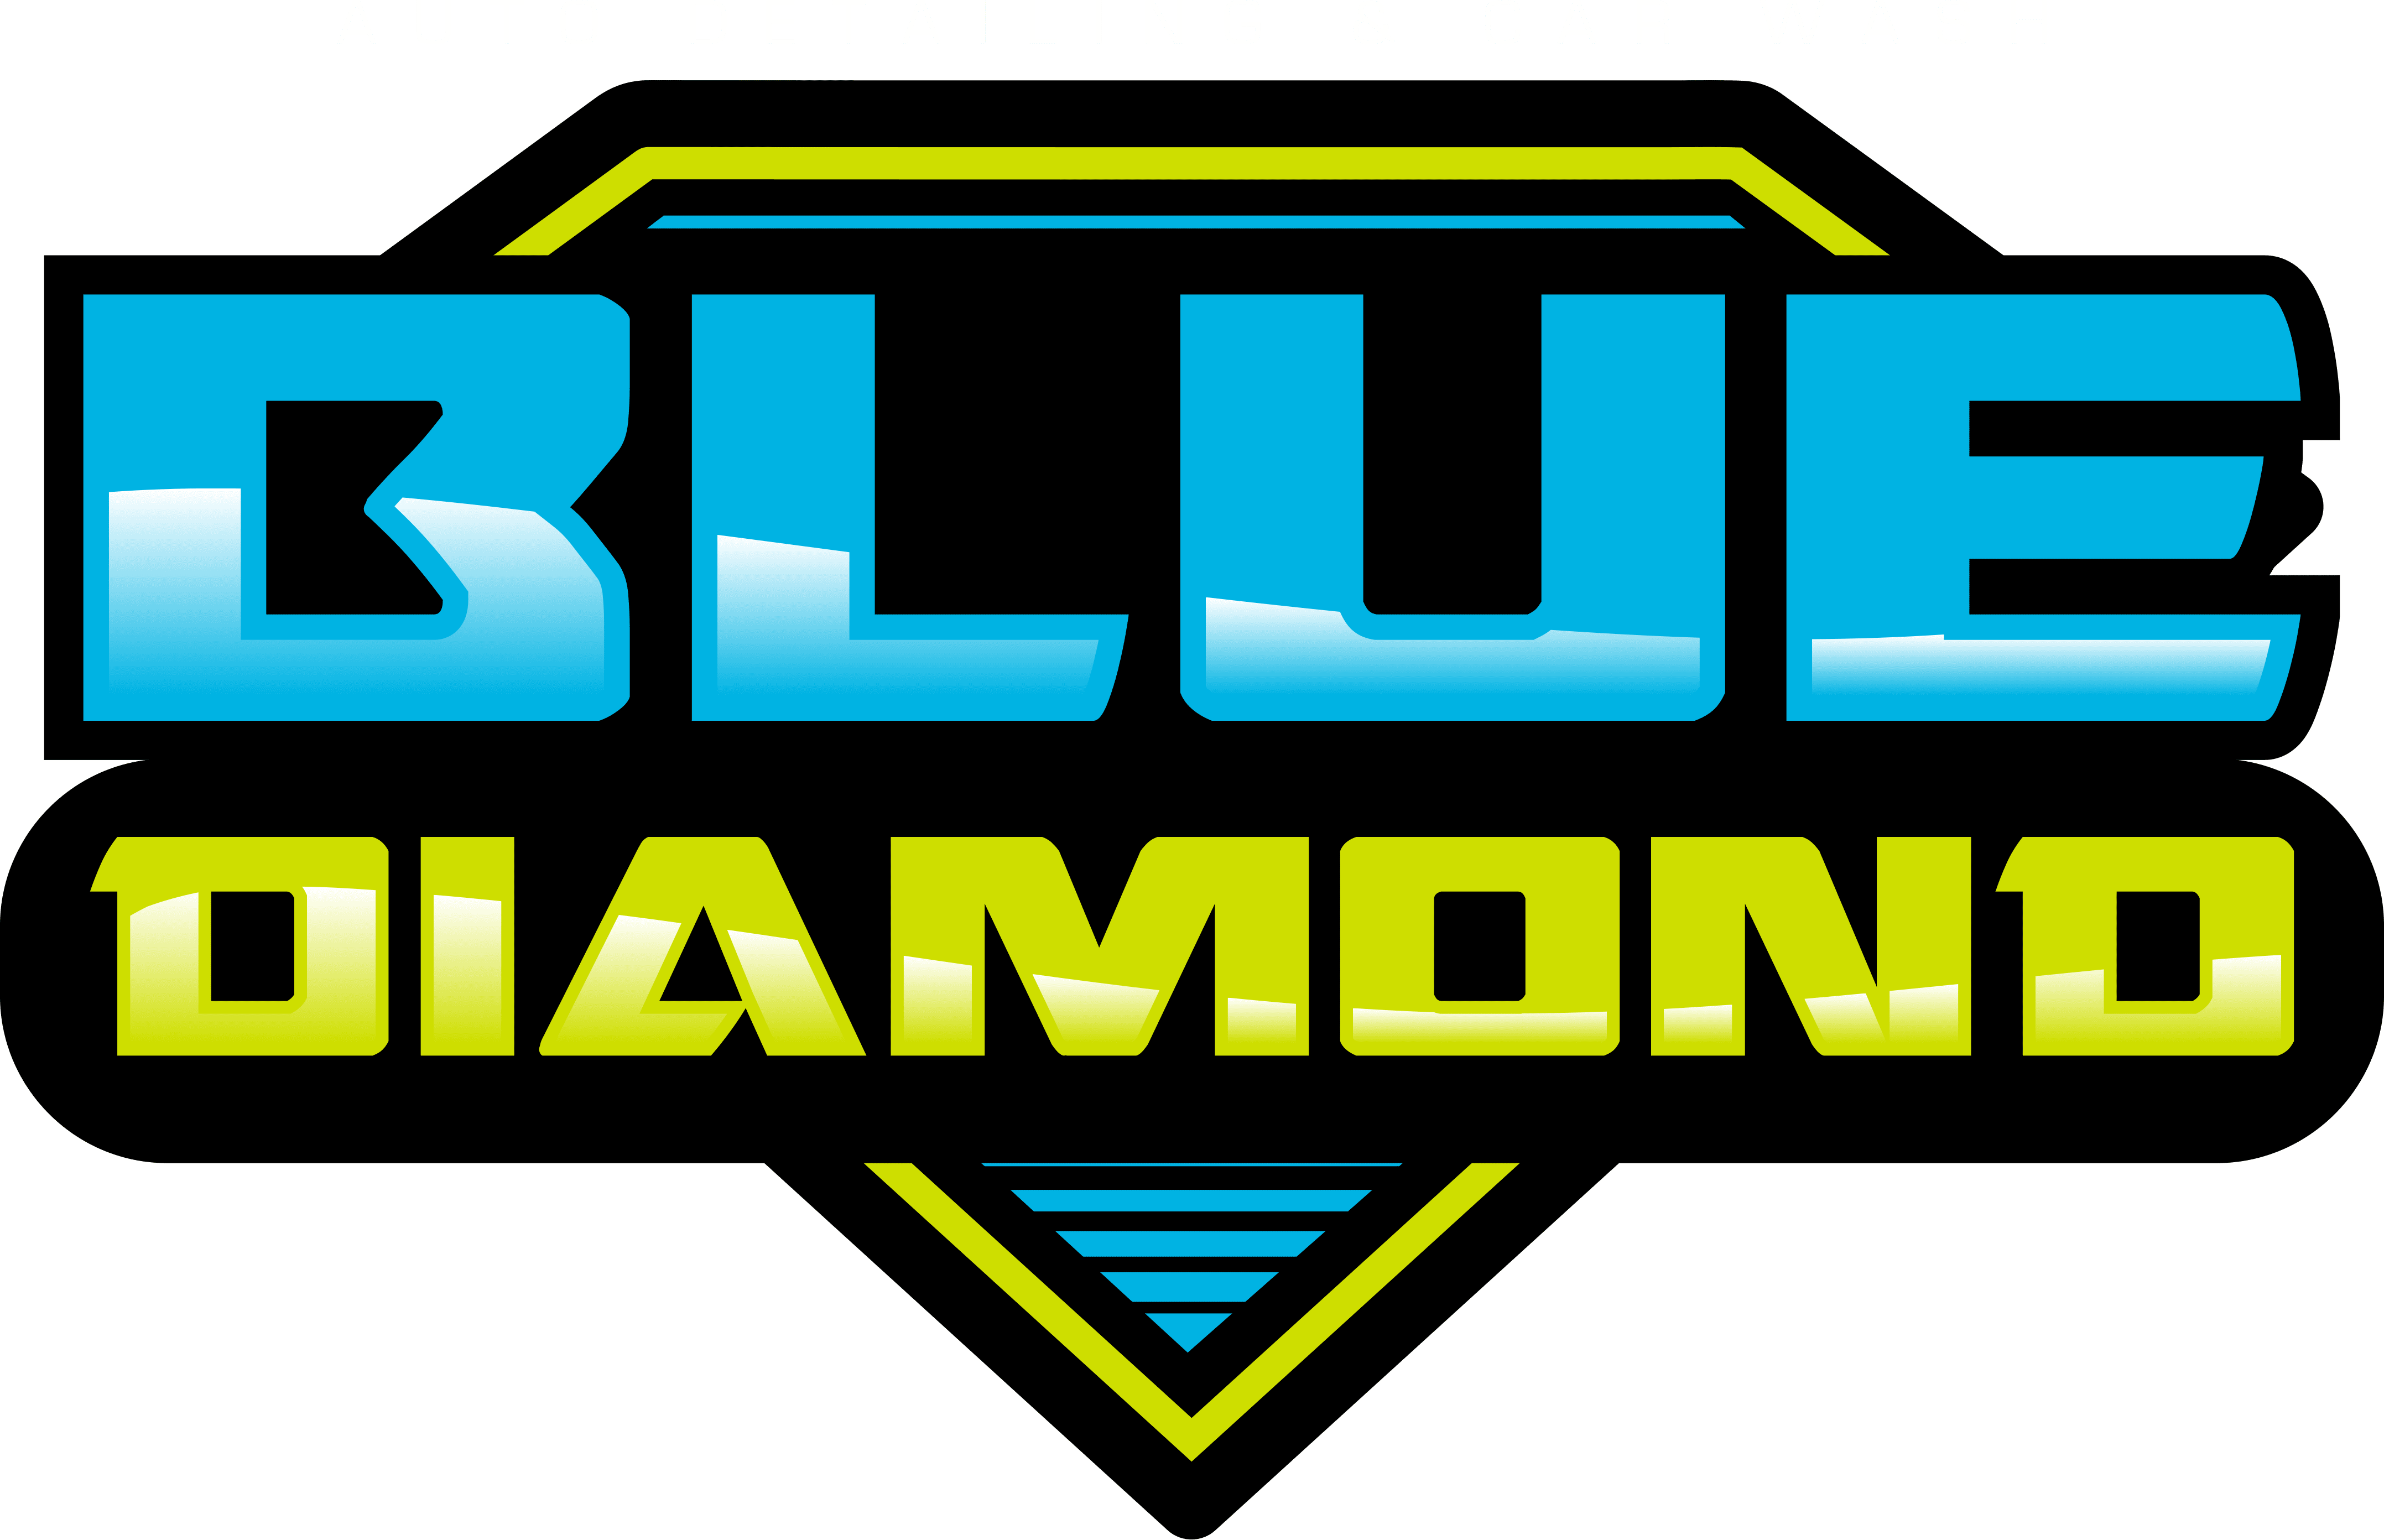 Blue Diamond | South Florida to The Keys Boat & Car Detailing